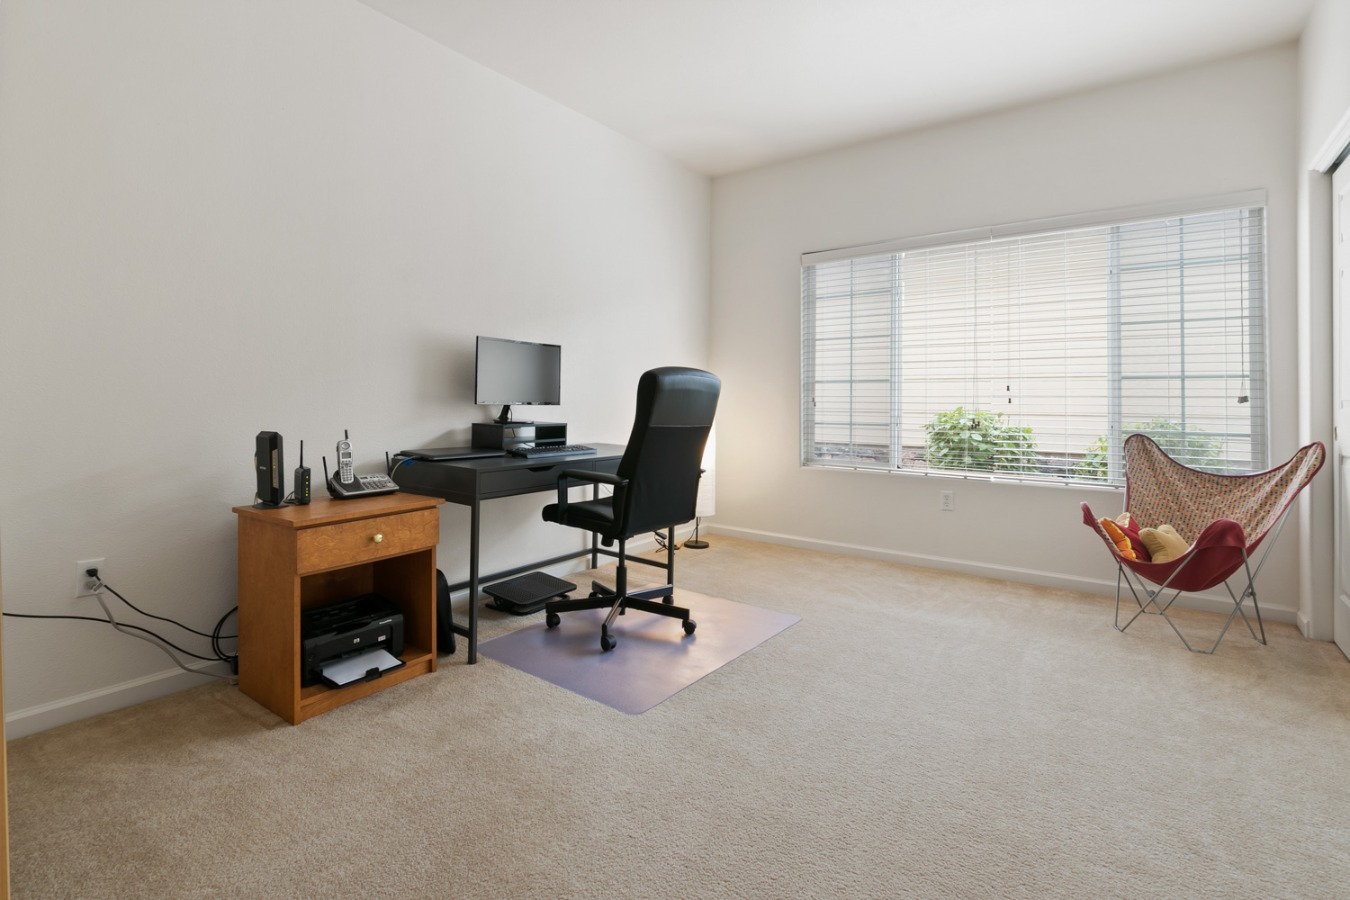 Very lg 2nd BR or home office